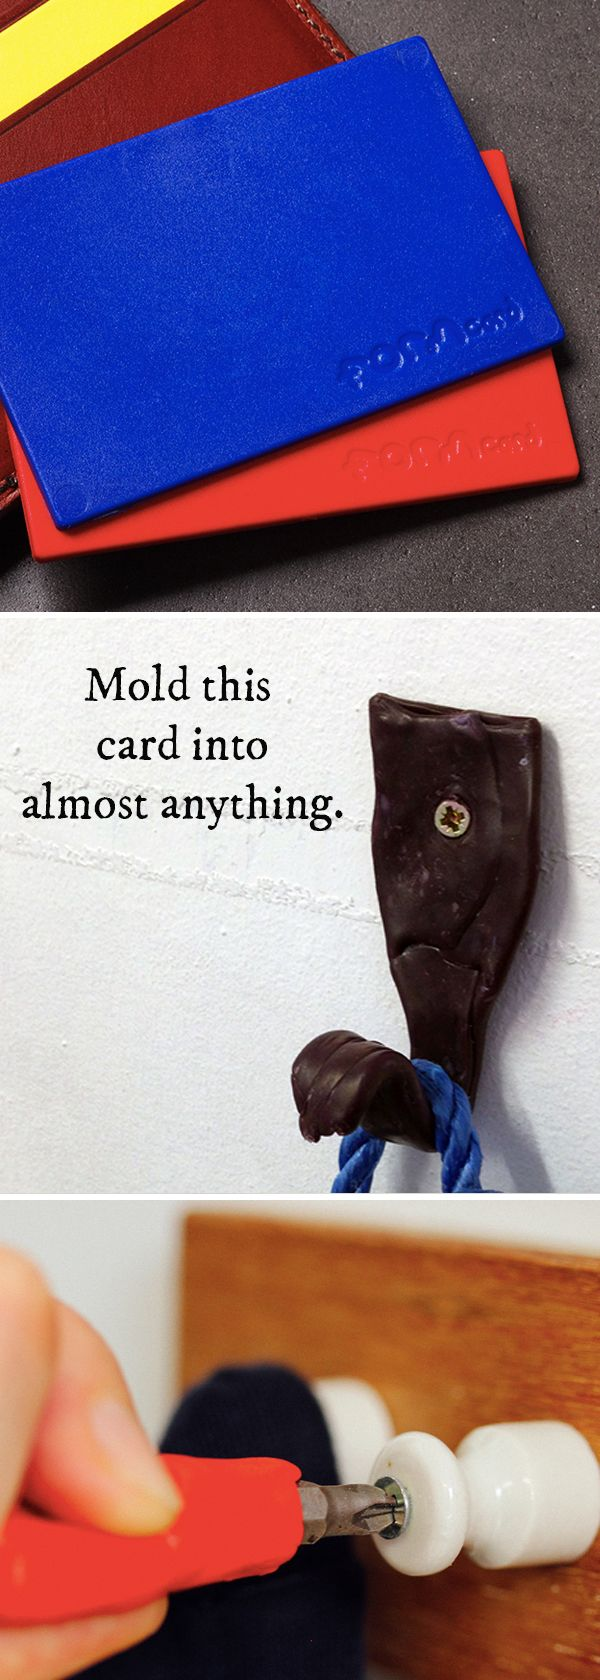 Activate this reusable, moldable plastic card in boiling water, wait for it to cool, then transform it into virtually anything—from a phone stand, to a handle for a broken tool . . . even replace a missing button.